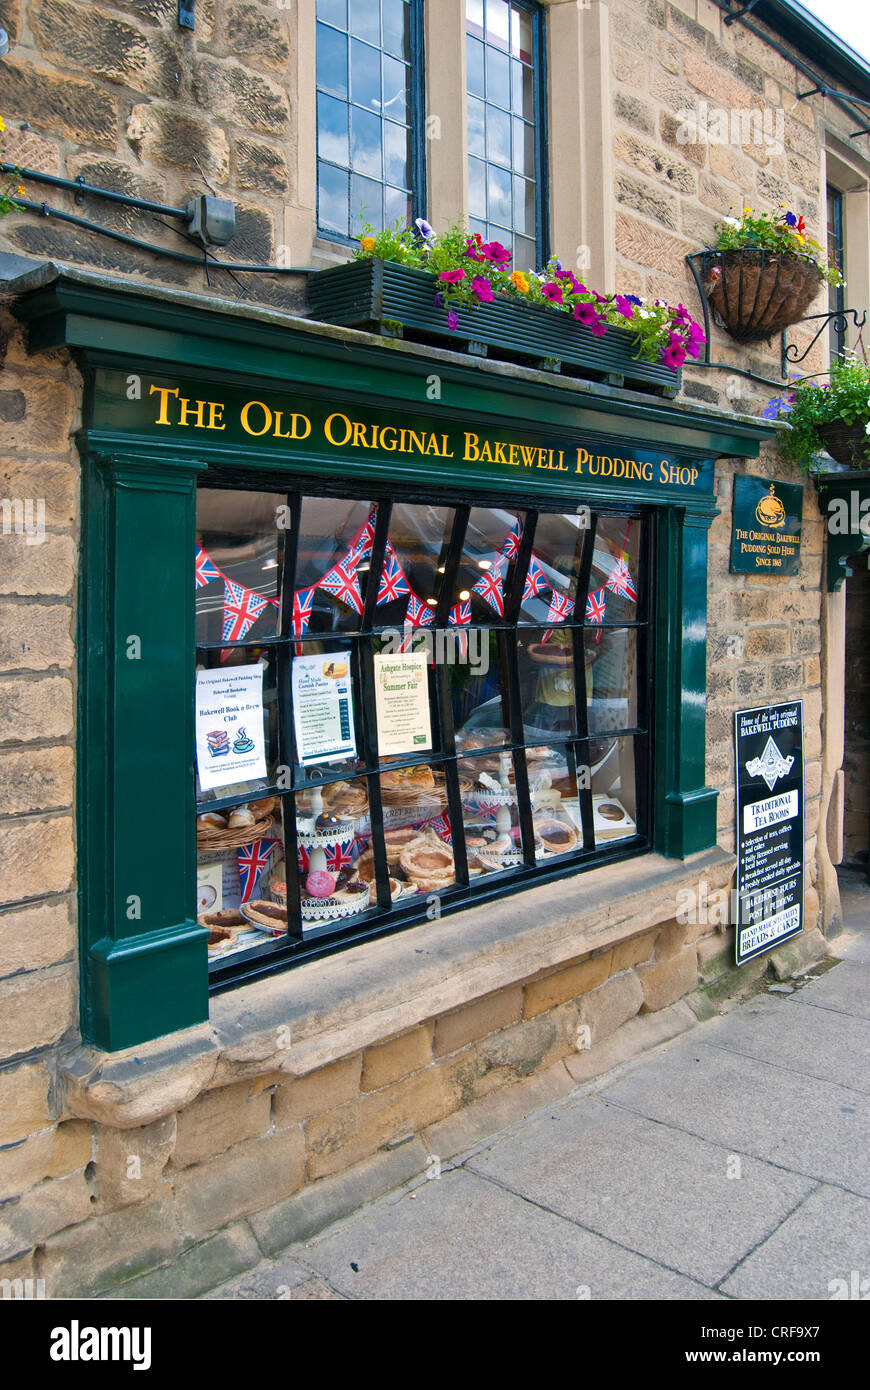 The Old Original Bakewell Pudding Shop - Stock Image